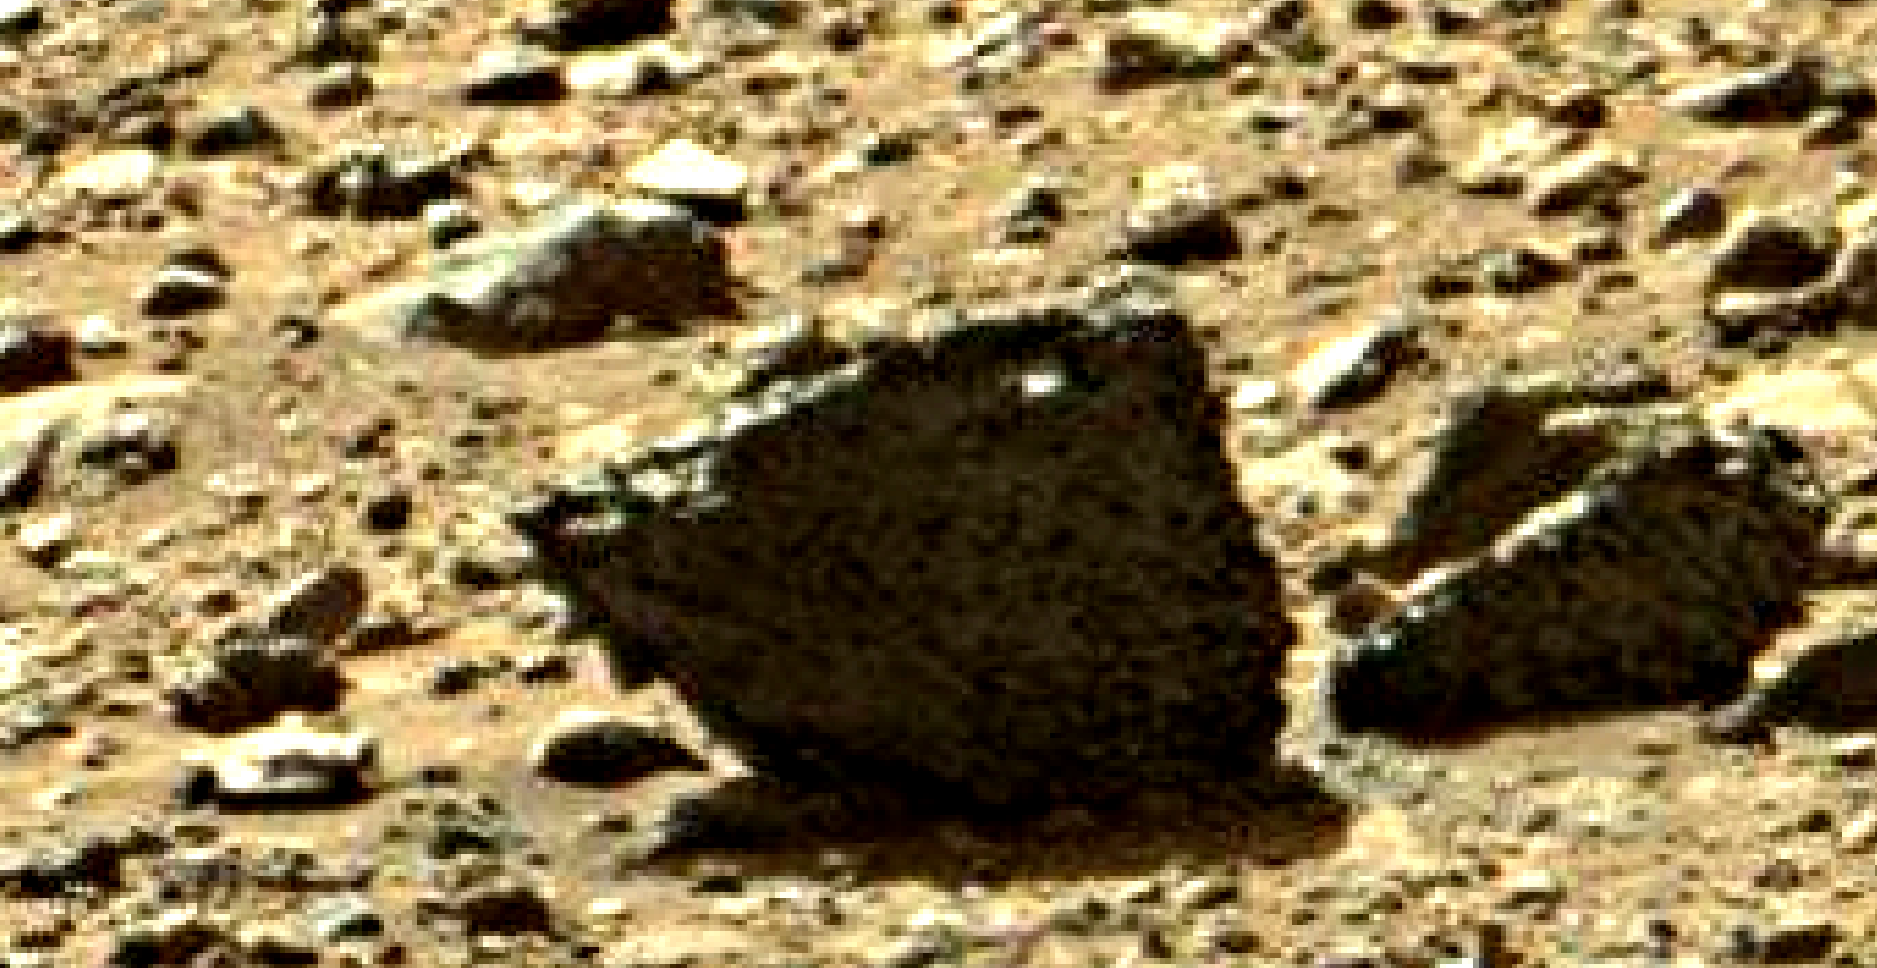 mars sol 1405 anomaly artifacts 1 was life on mars